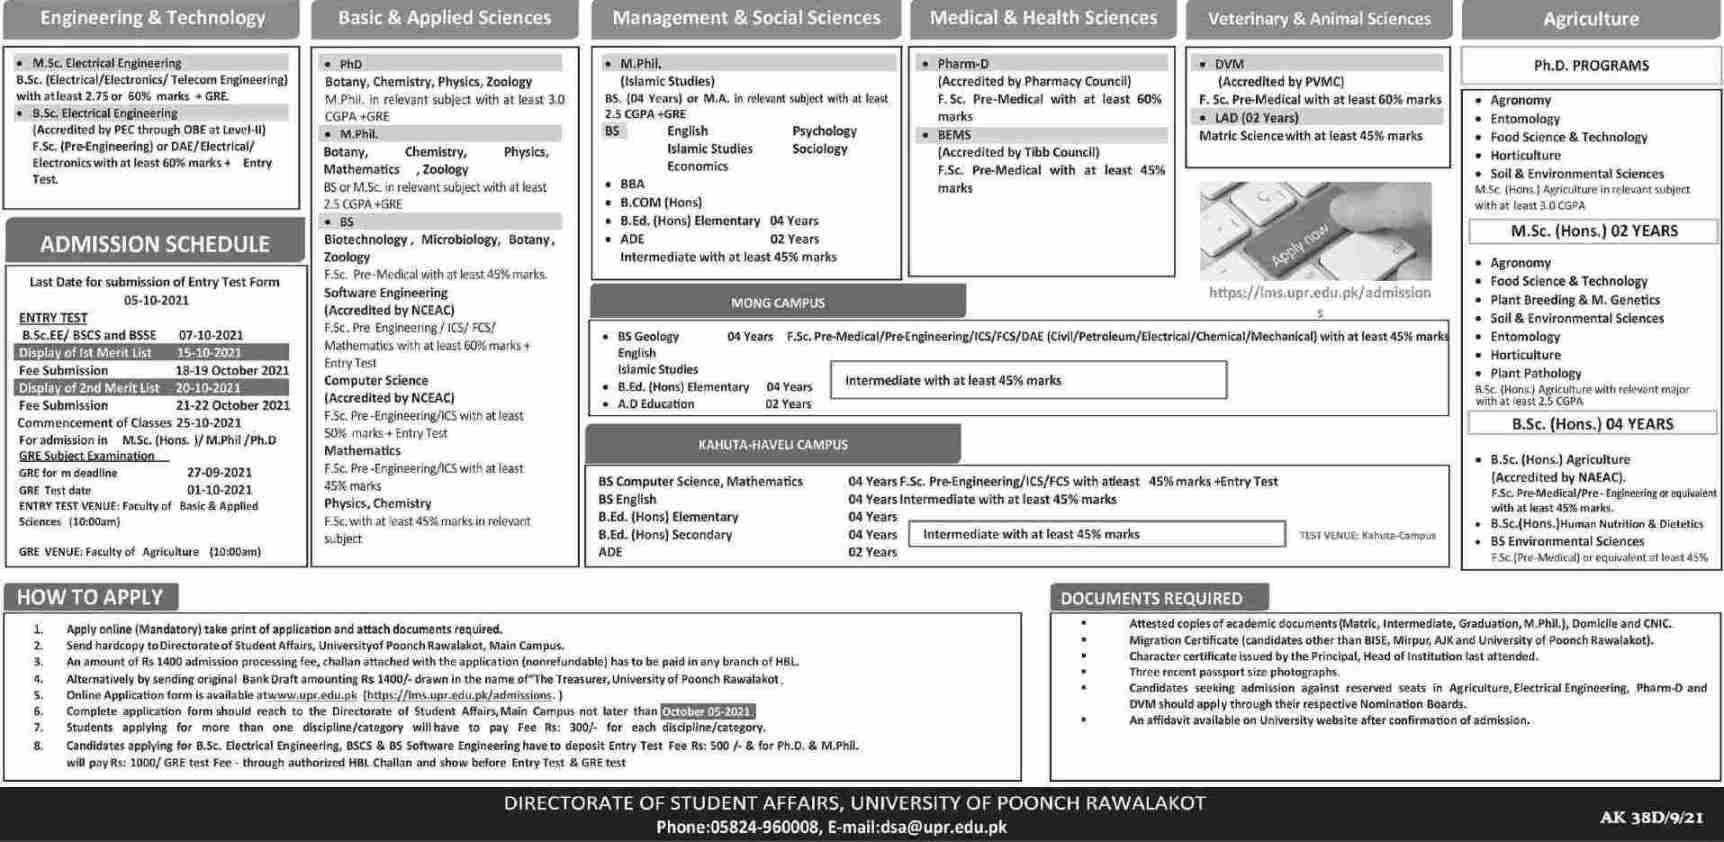 admission announcement of Unversity Of The Poonch, Rawala Kot